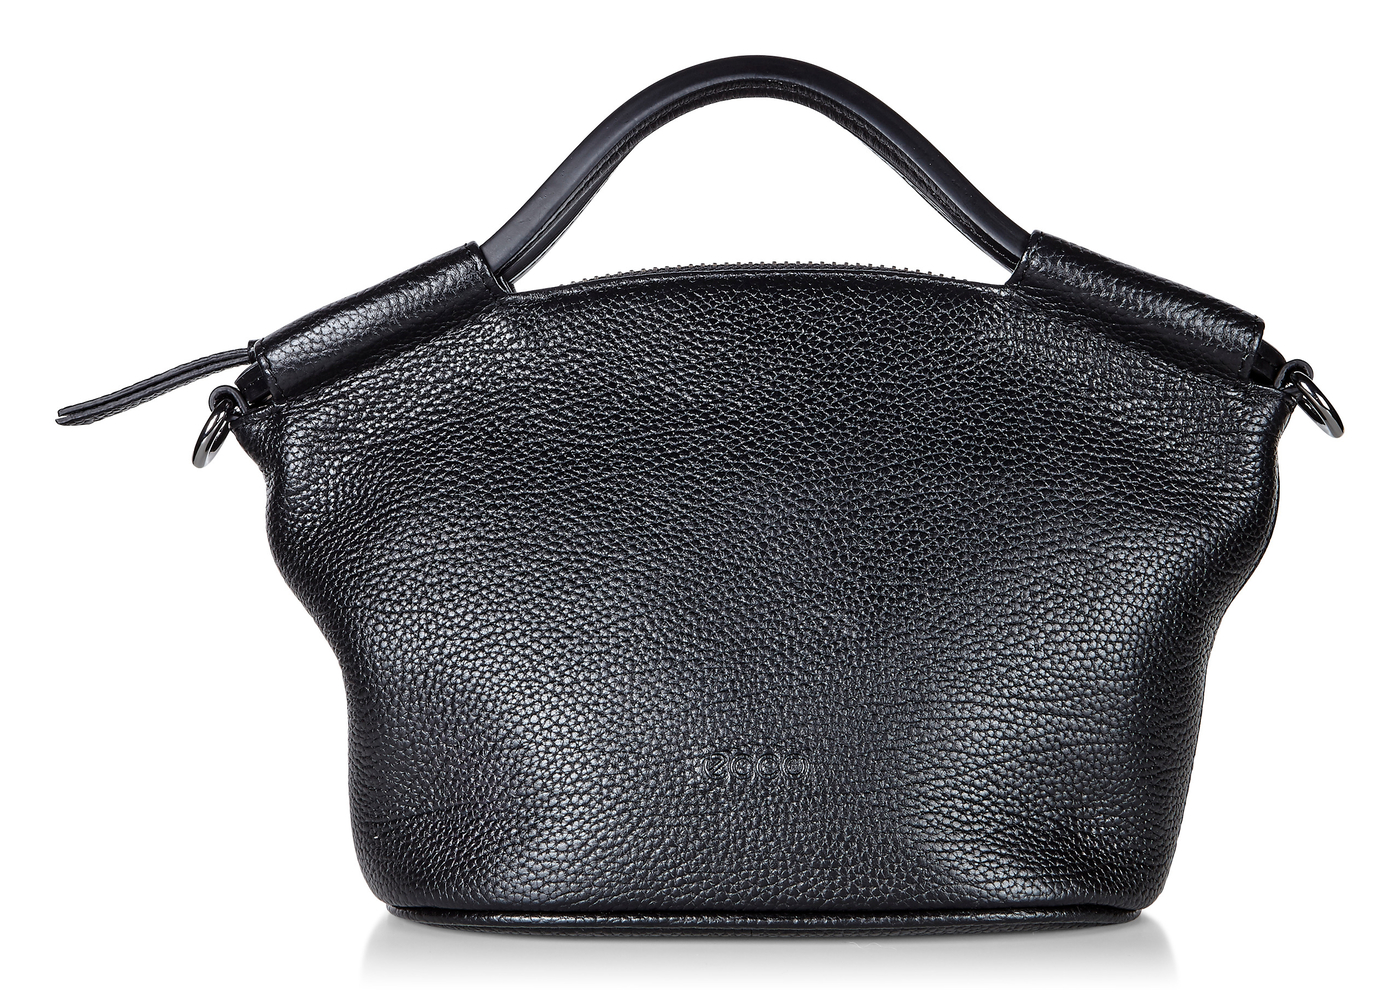 ECCO SP2 Small Doctors Bag